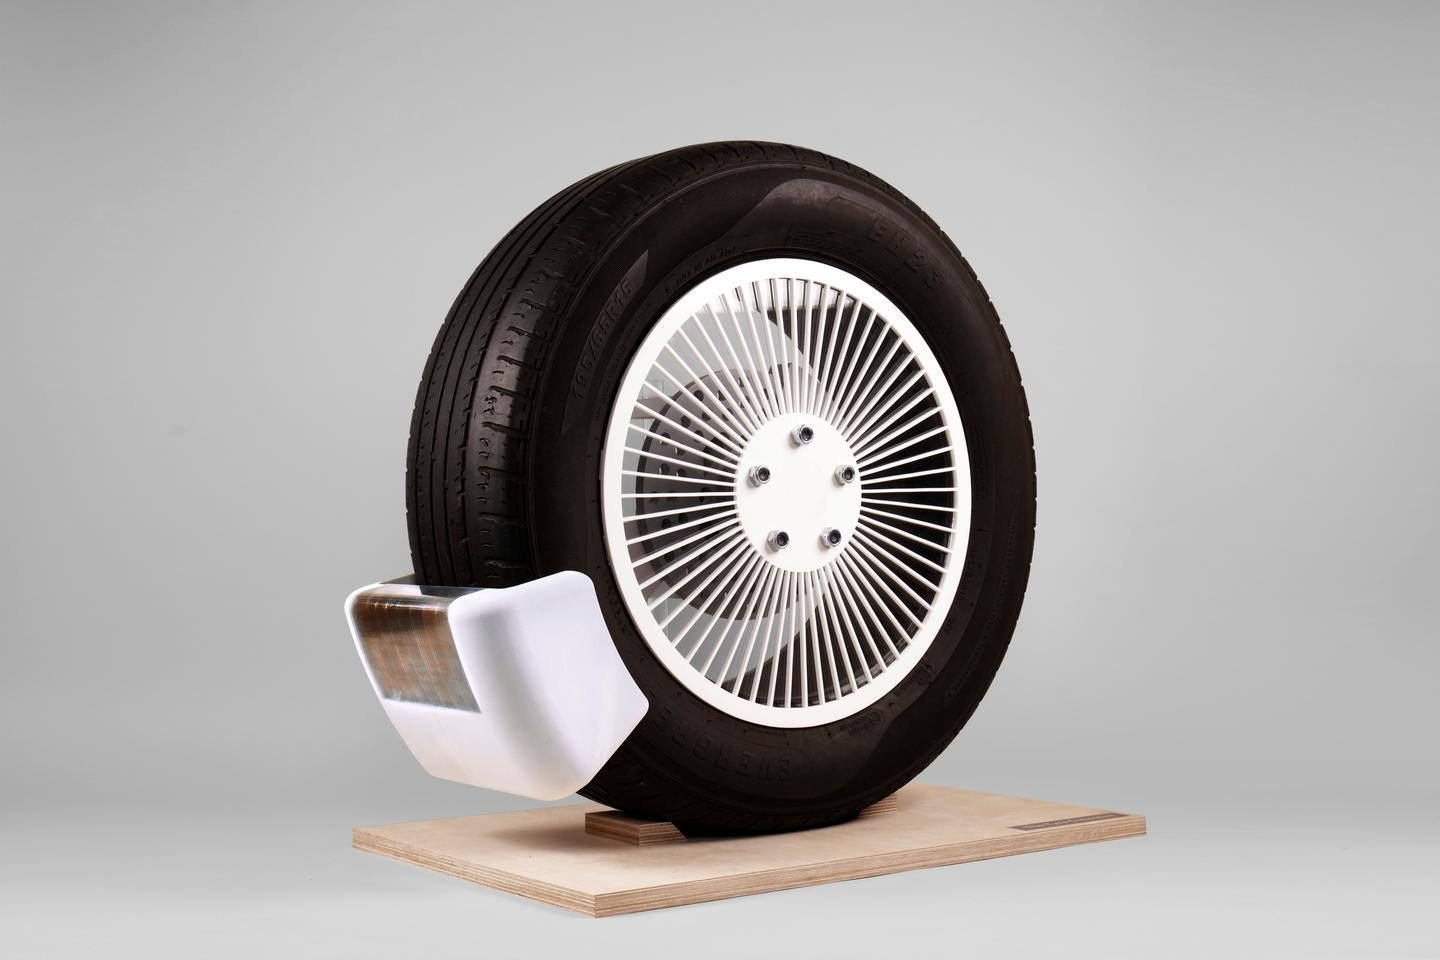 Vehicles could be equipped with one device per wheel